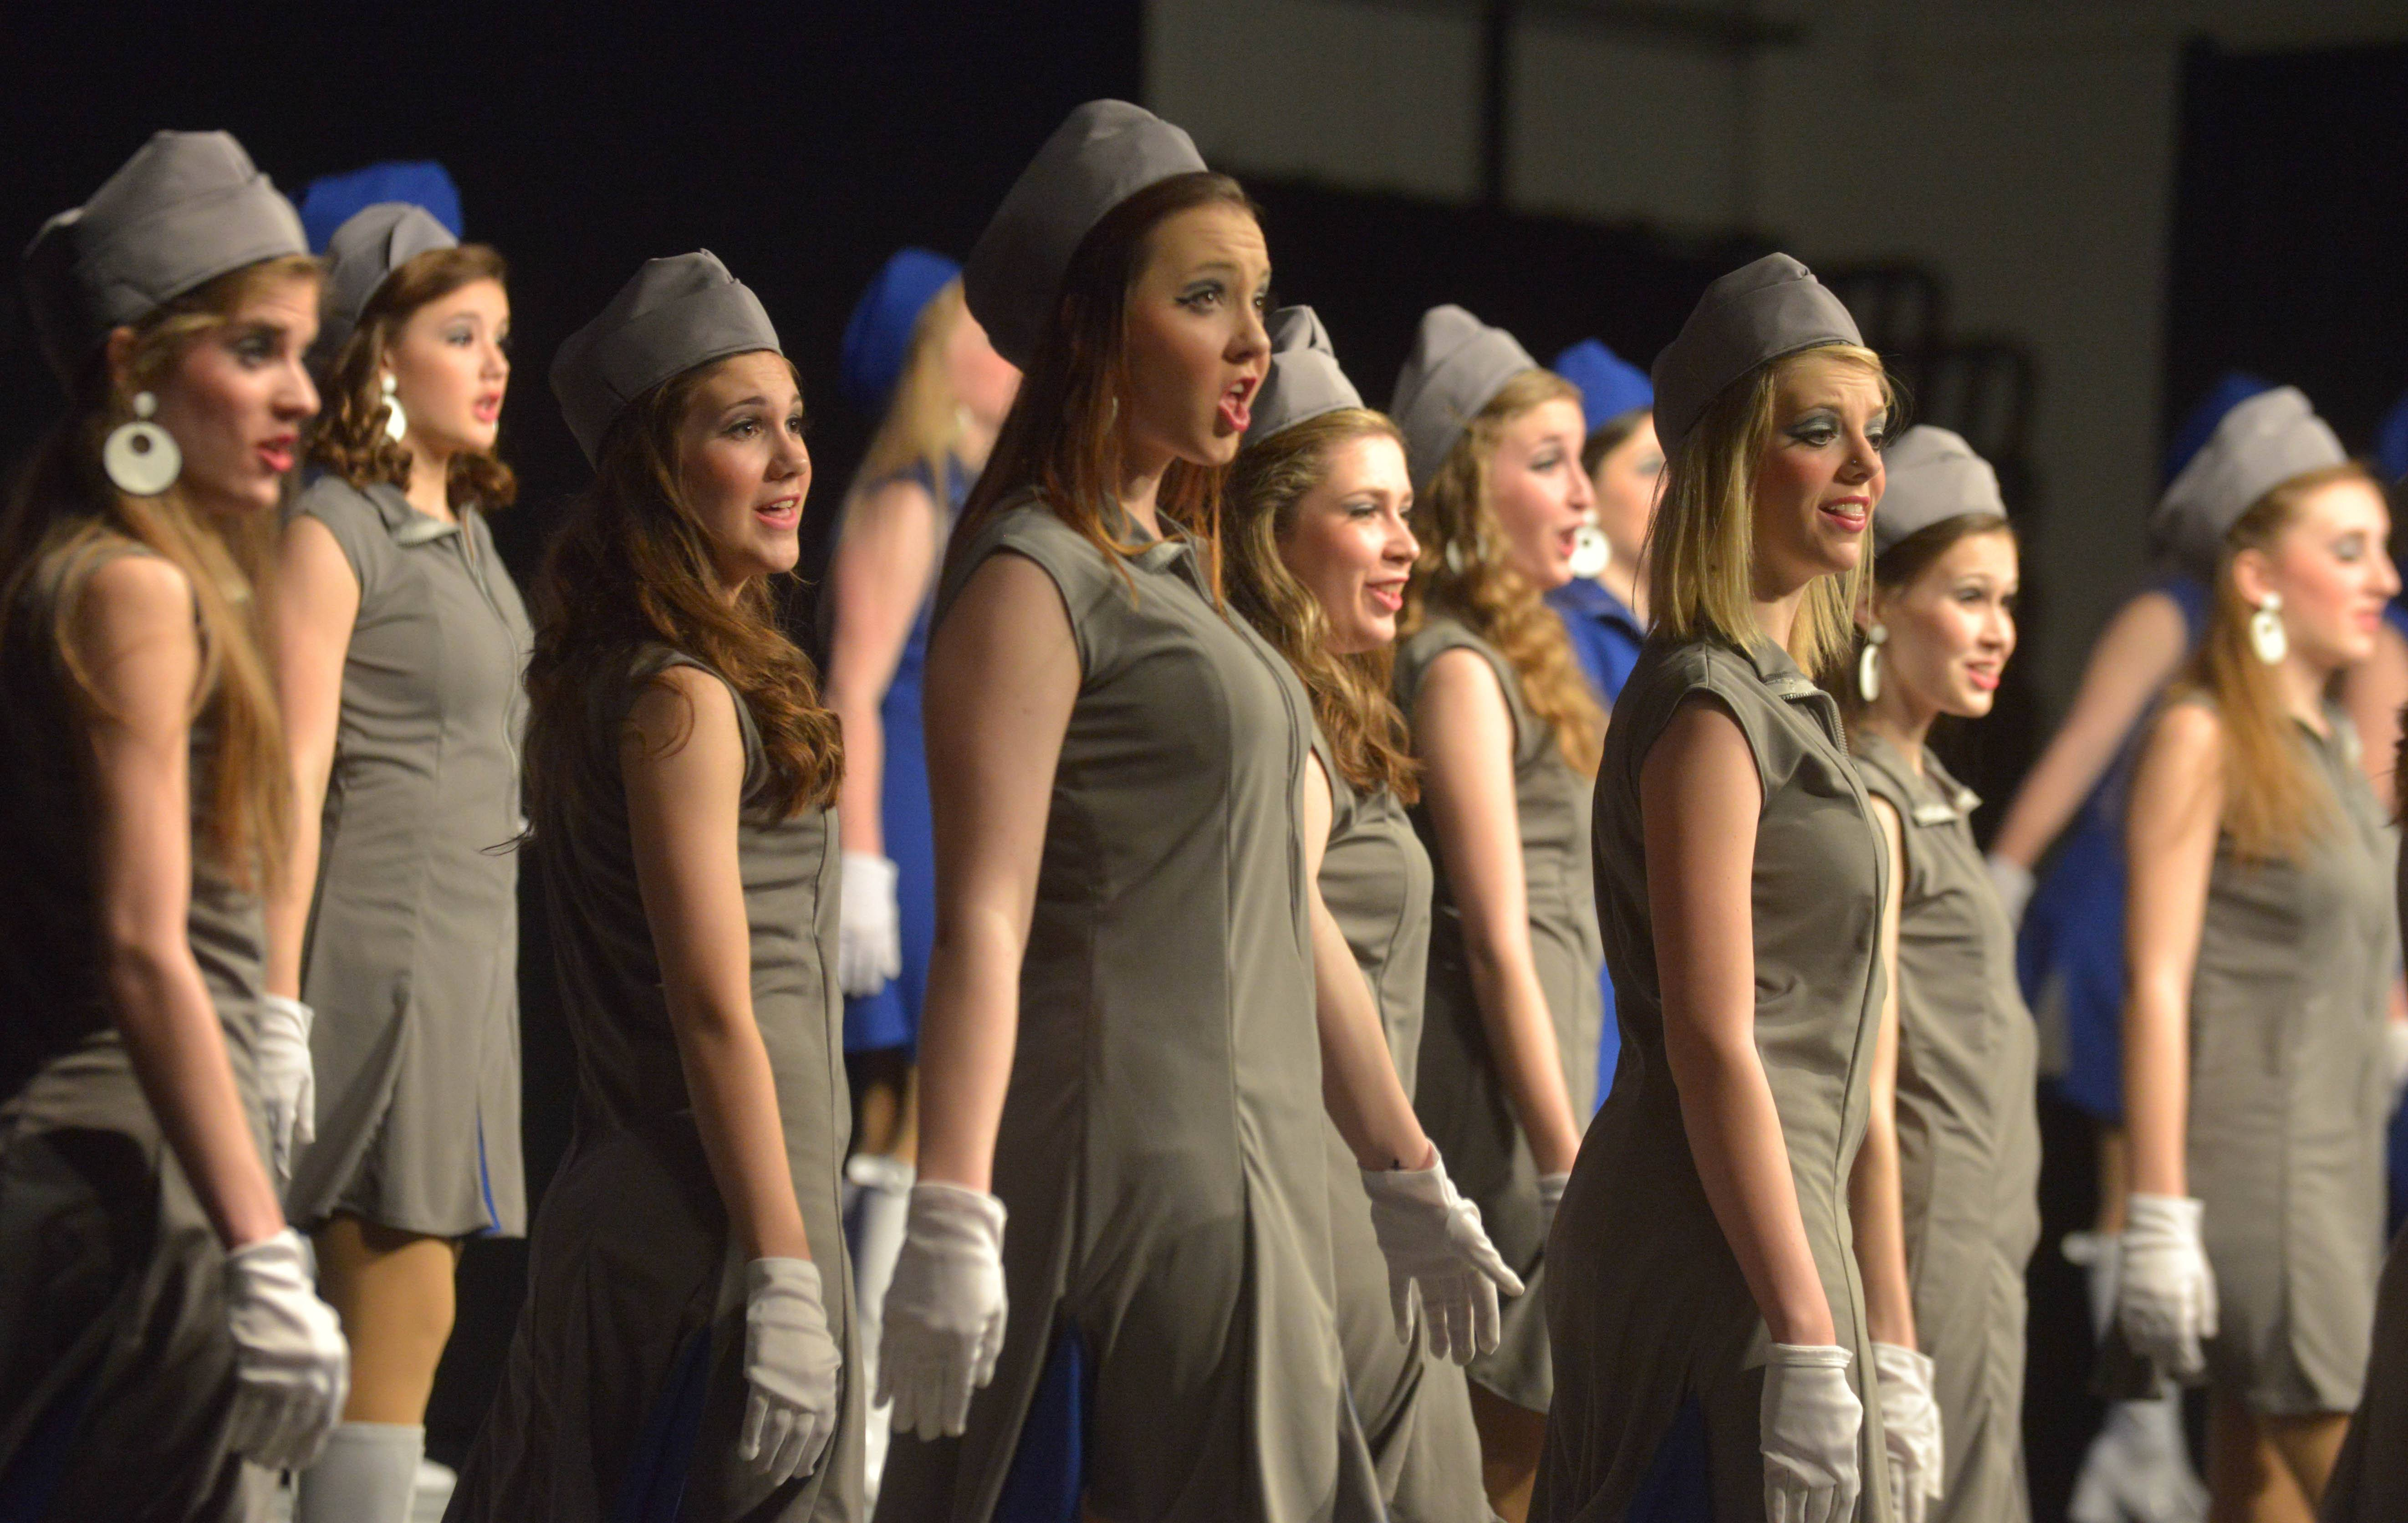 New Mexico's Eldorado High School took part in the 7th annual Choral Classic Invitational Saturday in Wheaton. Thirty middle schools and high schools from 11 states participated in the two-day show choir and vocal performance competition.